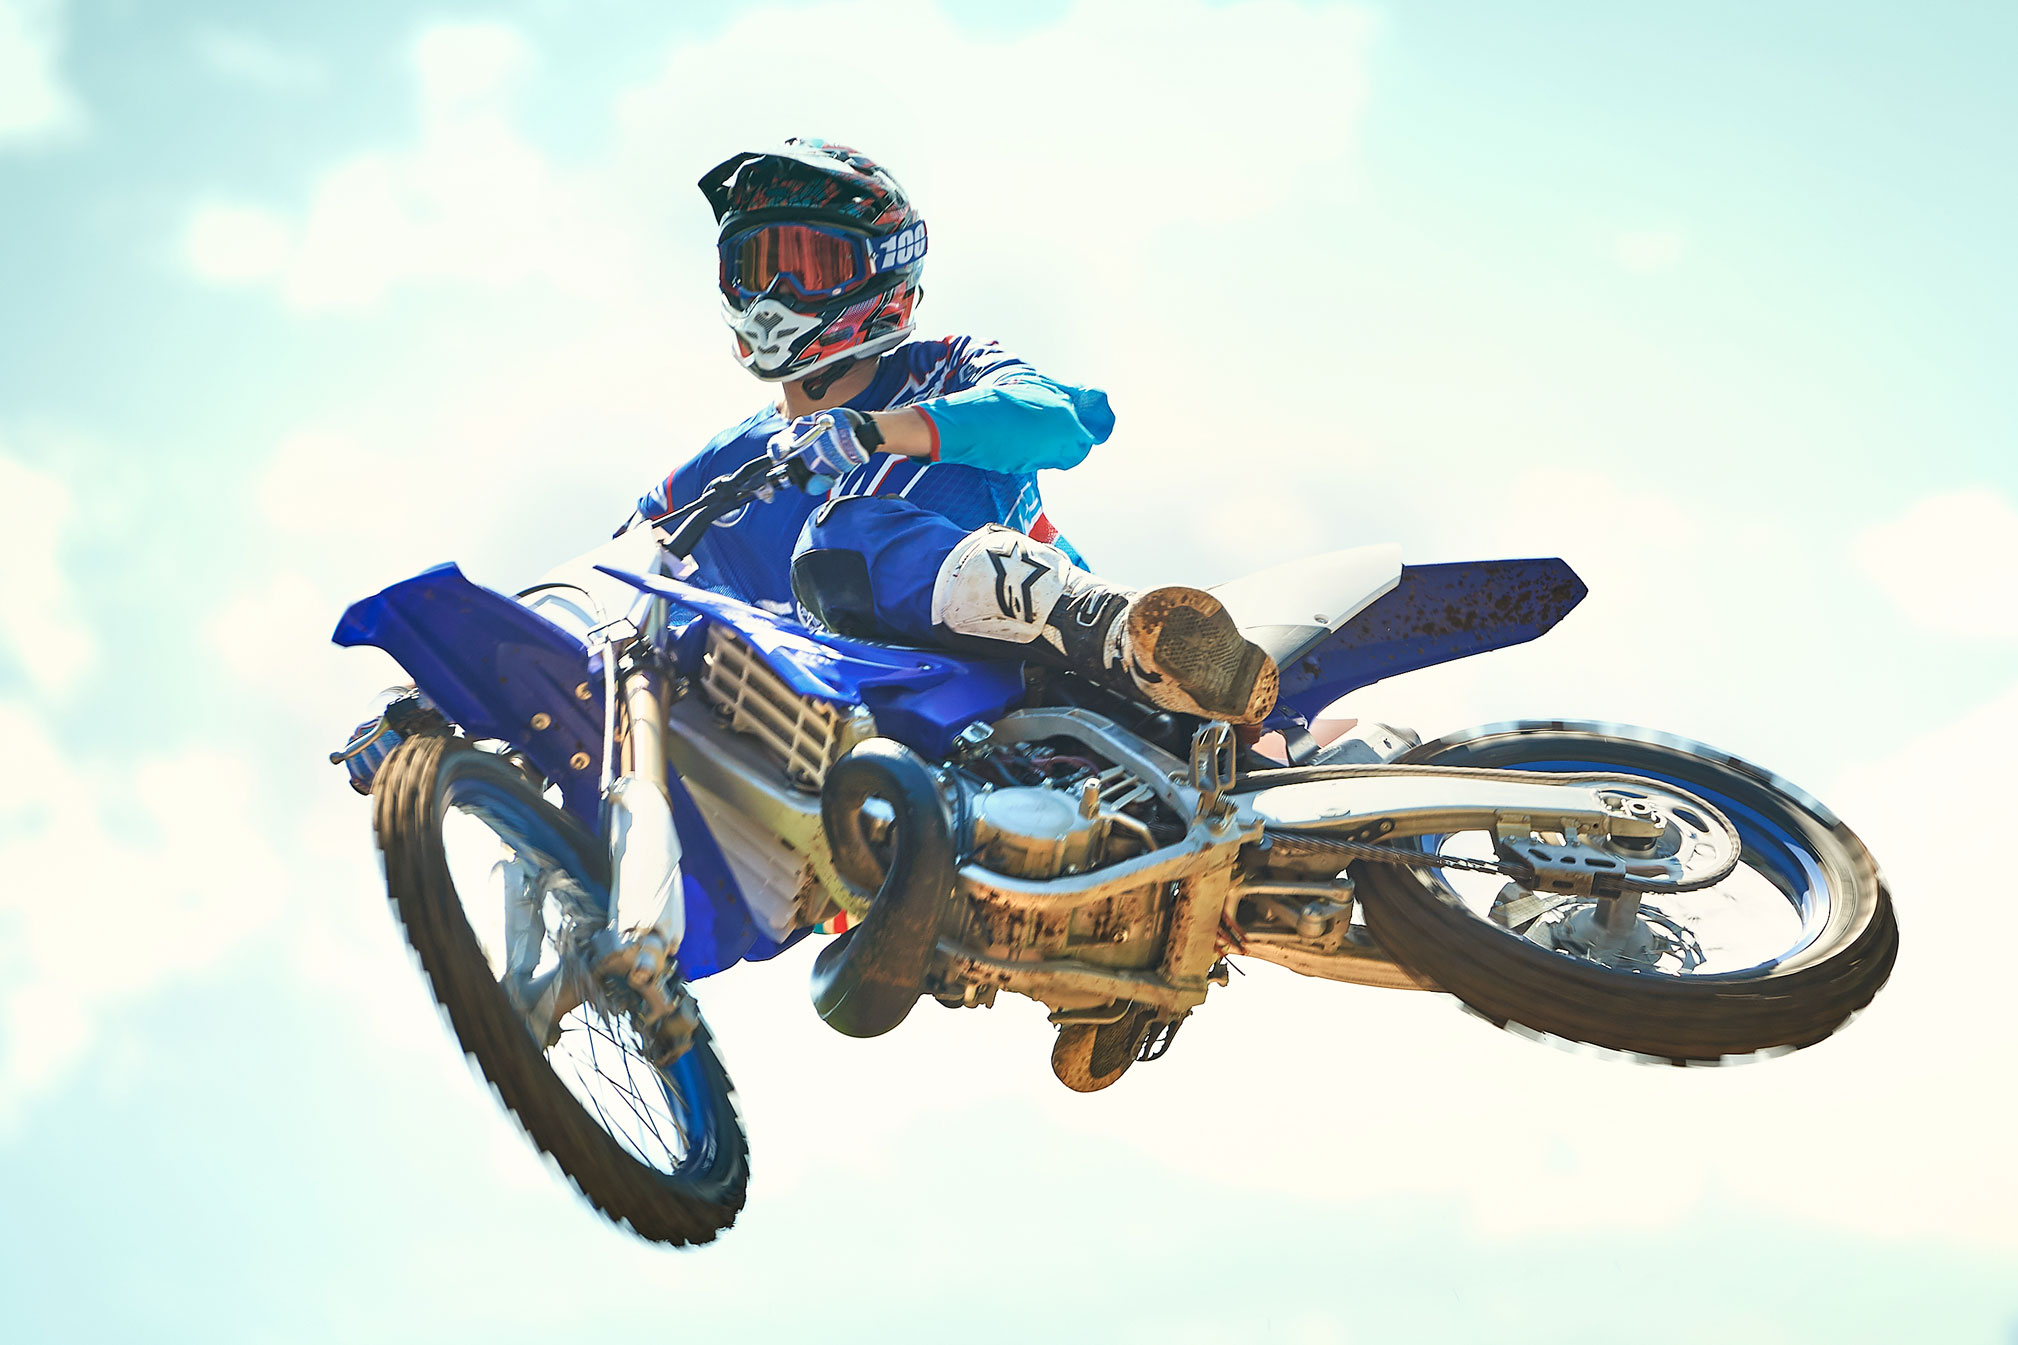 2018 Yamaha YZ250 Review • Total Motorcycle